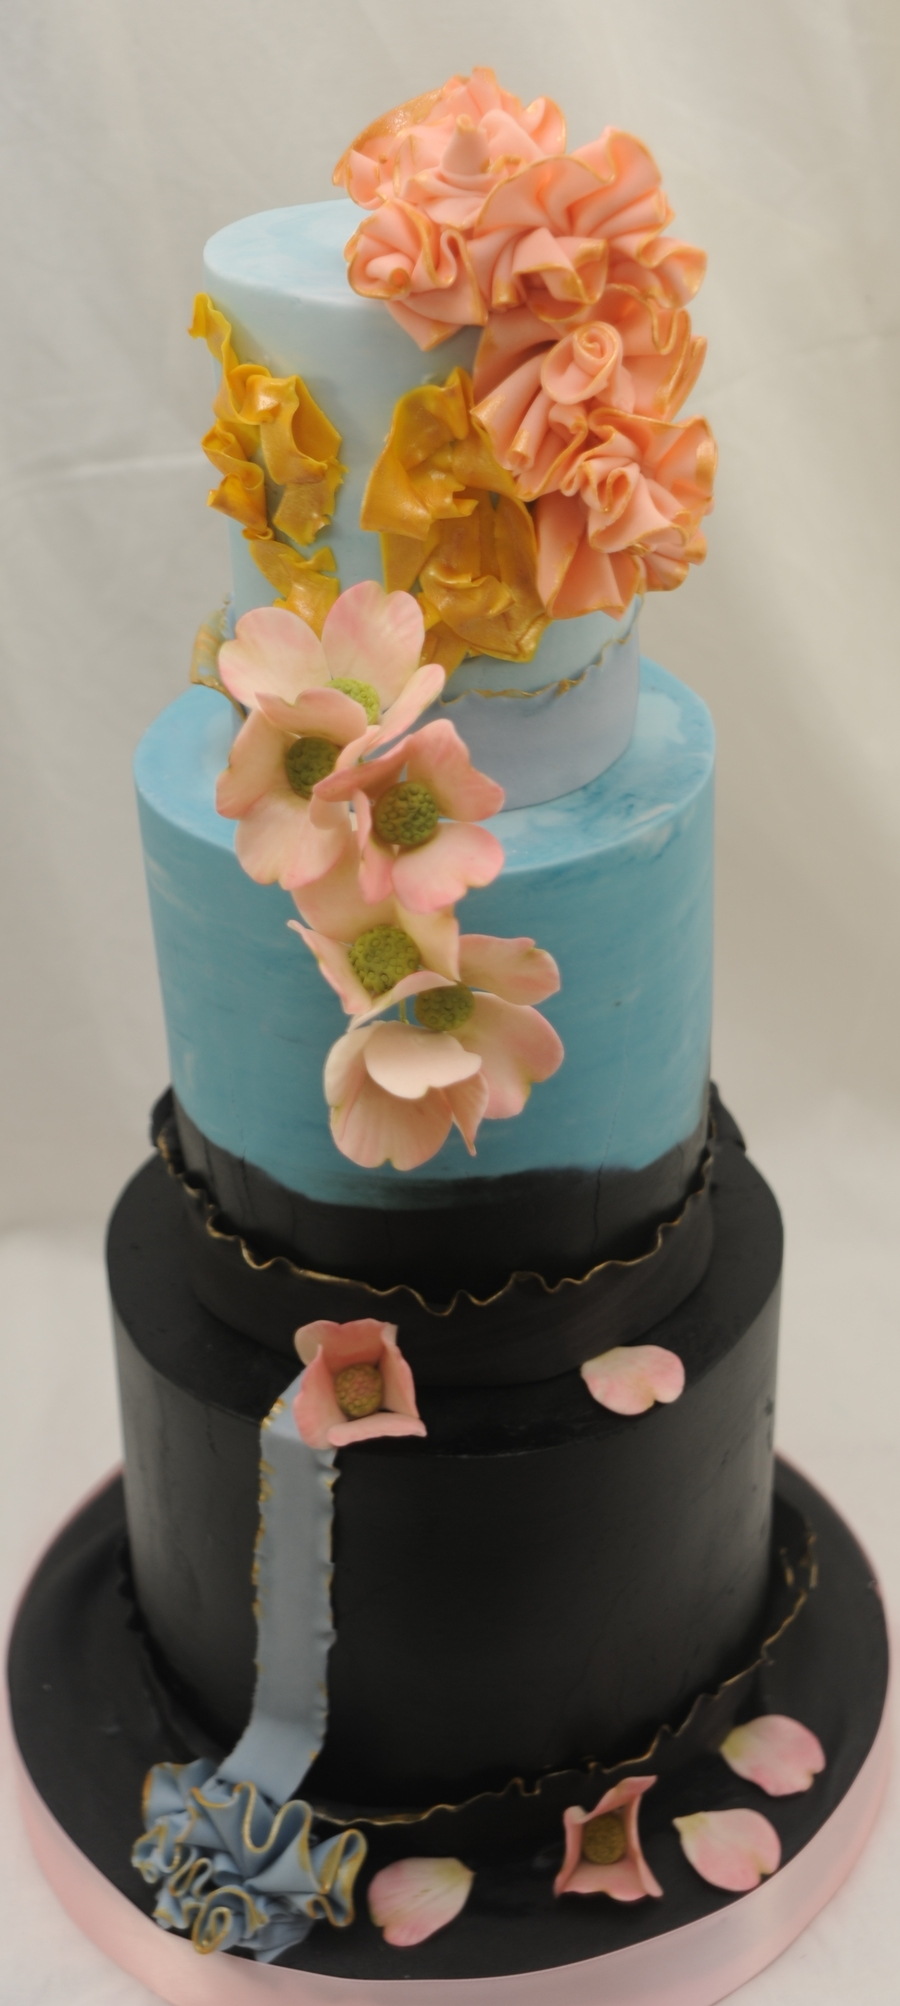 This Is A 4 6 And 8 Inch Cake Finished In Buttercream With Fondant Accents And Stylized Gumpaste Dogwood Flowers This Cake Is Inspired By  on Cake Central